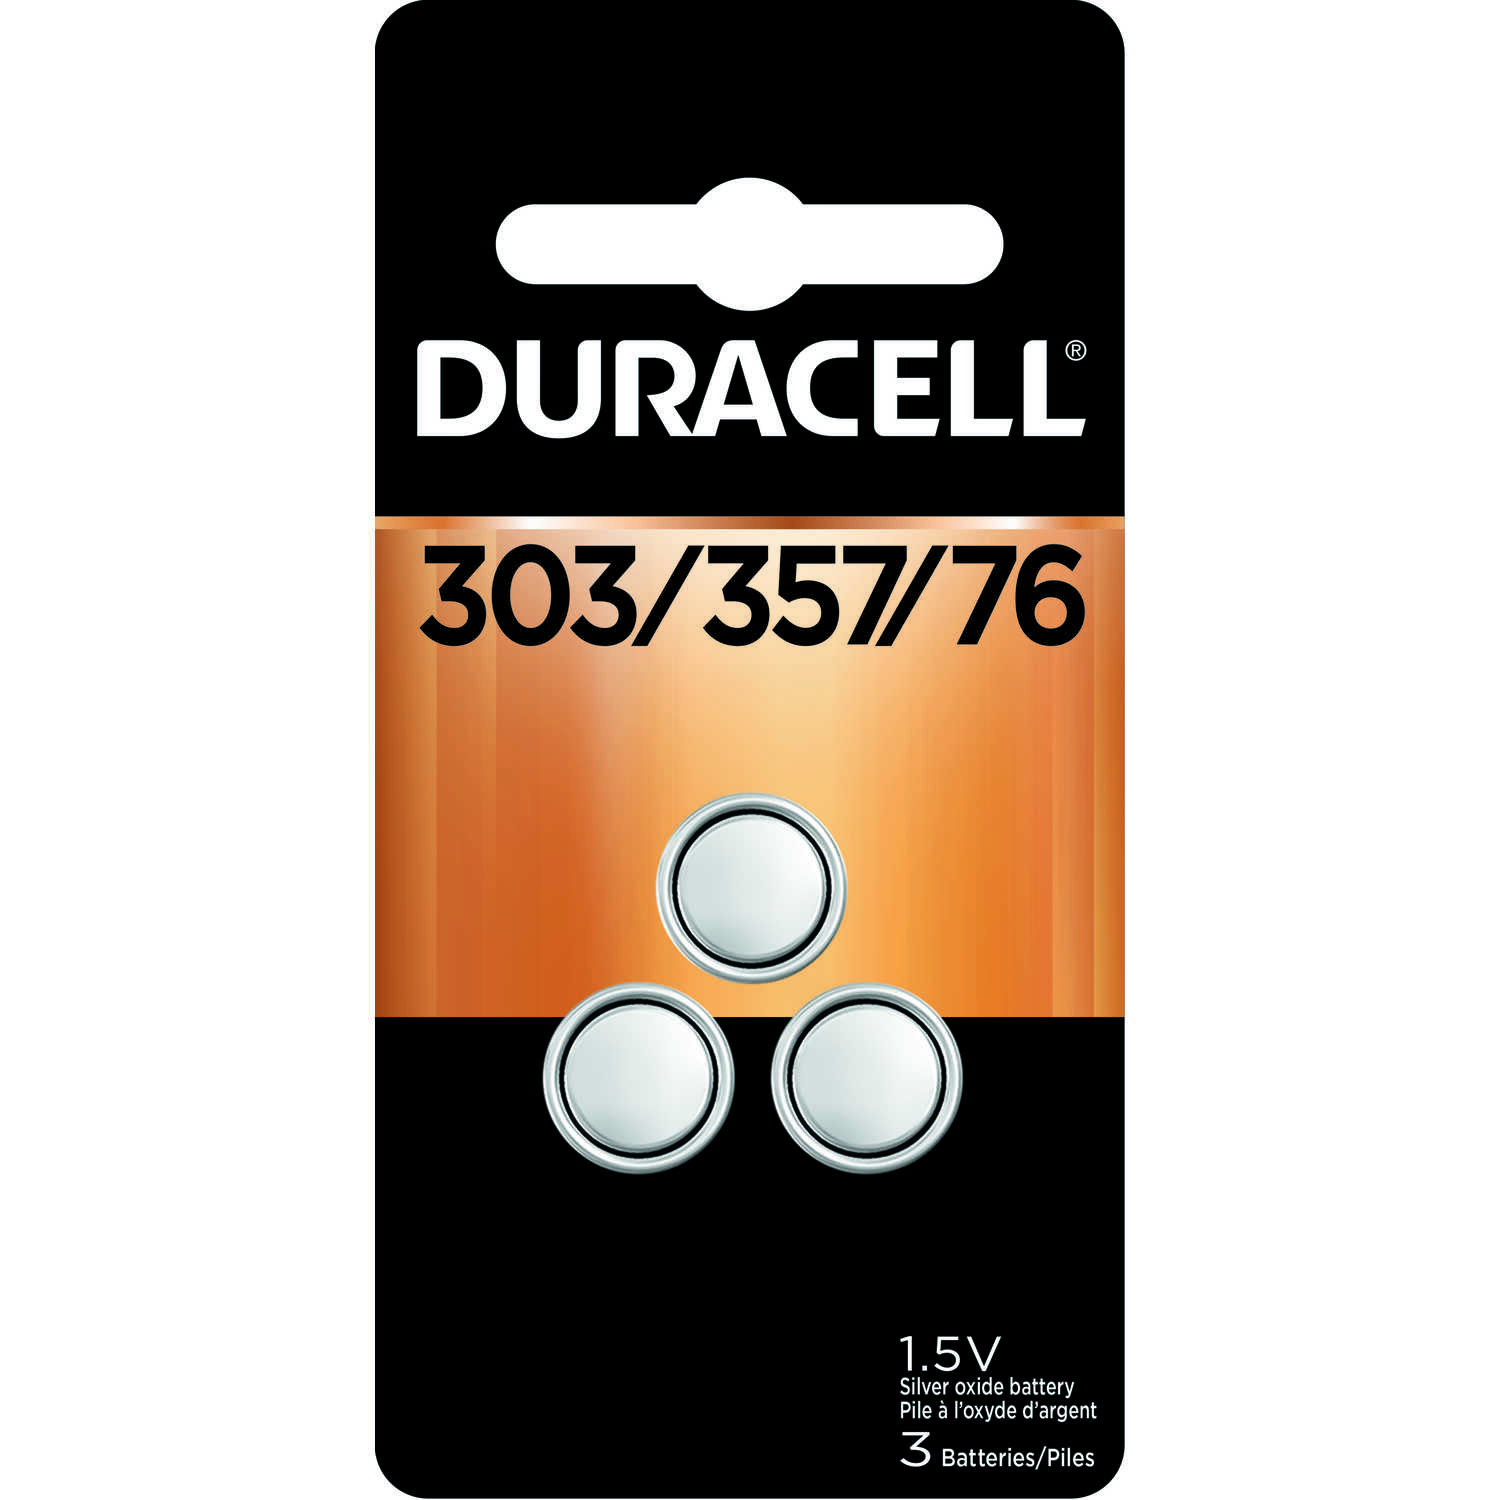 Duracell  Silver Oxide  303/357/76  1.5 volt Electronic/Watch Battery  3 pk